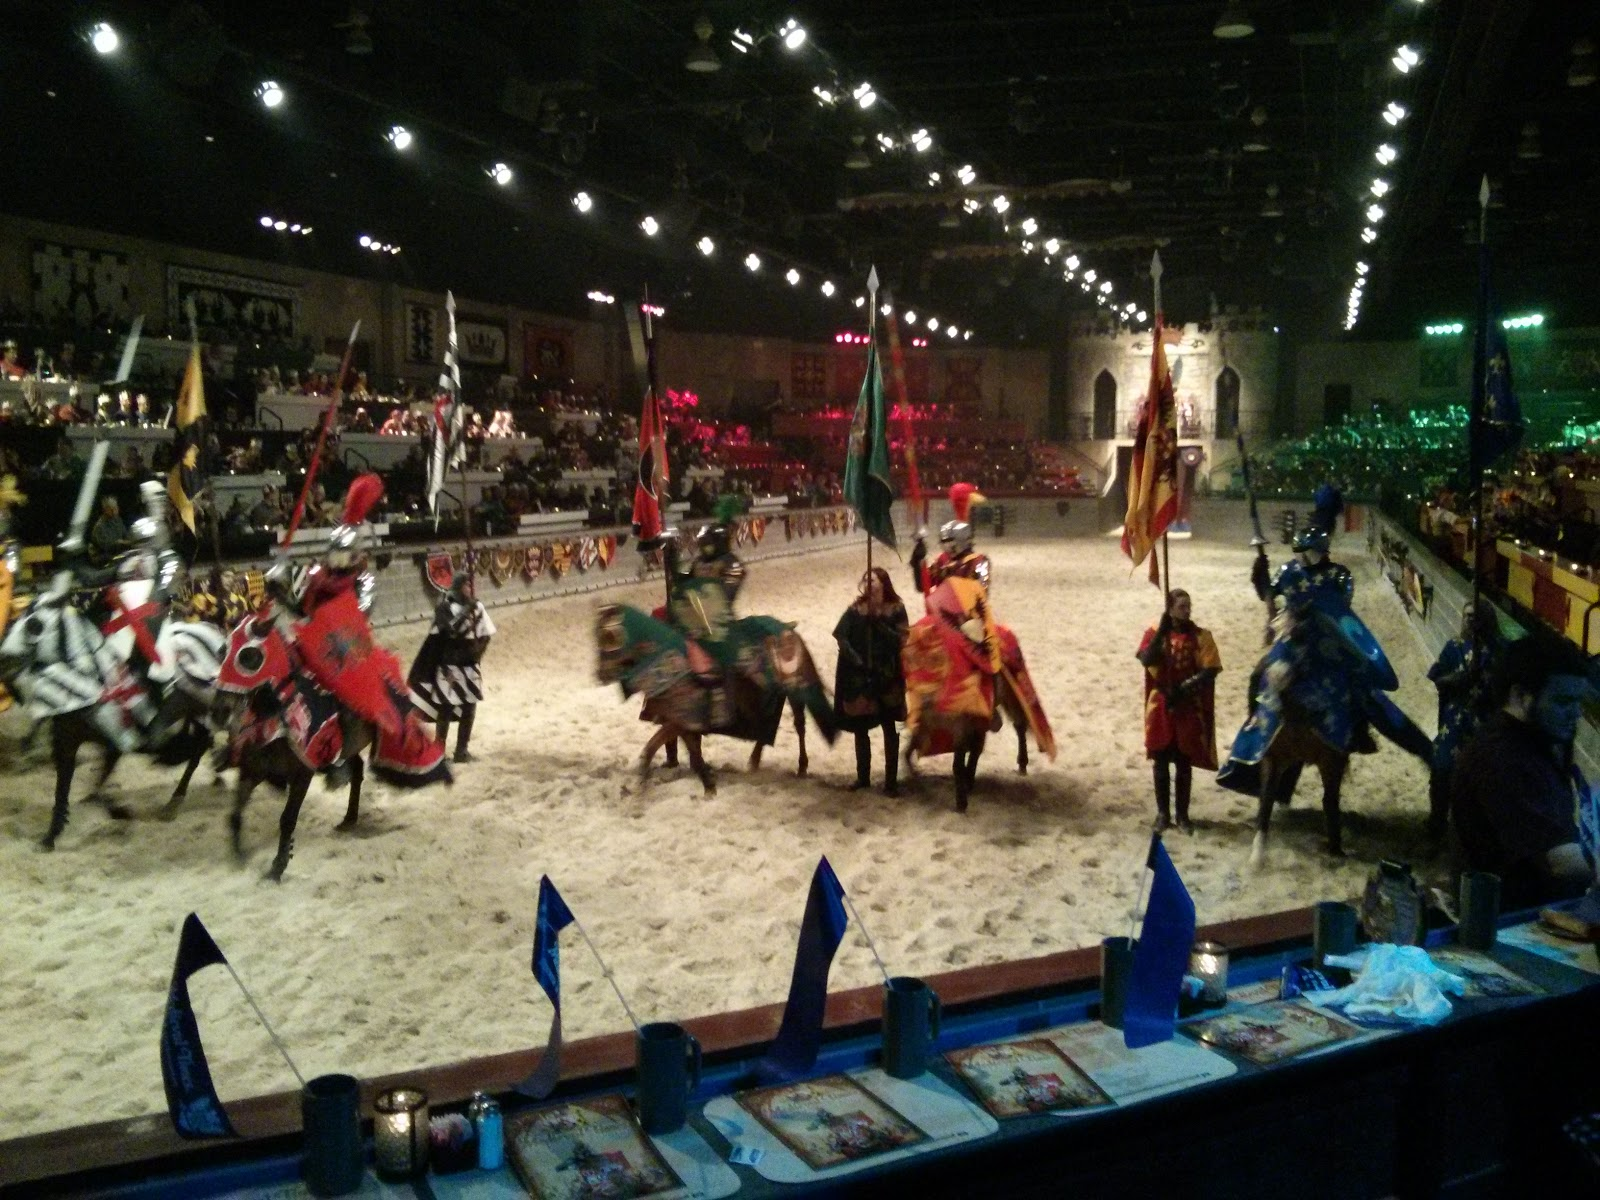 Set in Medieval Spain, a king and his court present falconry, chivalry, equestrian demonstrations, jousting, and dismounted combat with swords, axes and maces while servers keep the food and drink flowing. Arundel Mills Cir Hanover, MD Get Directions. Phone number () Medieval Times Dinner & Tournament says 4/4().